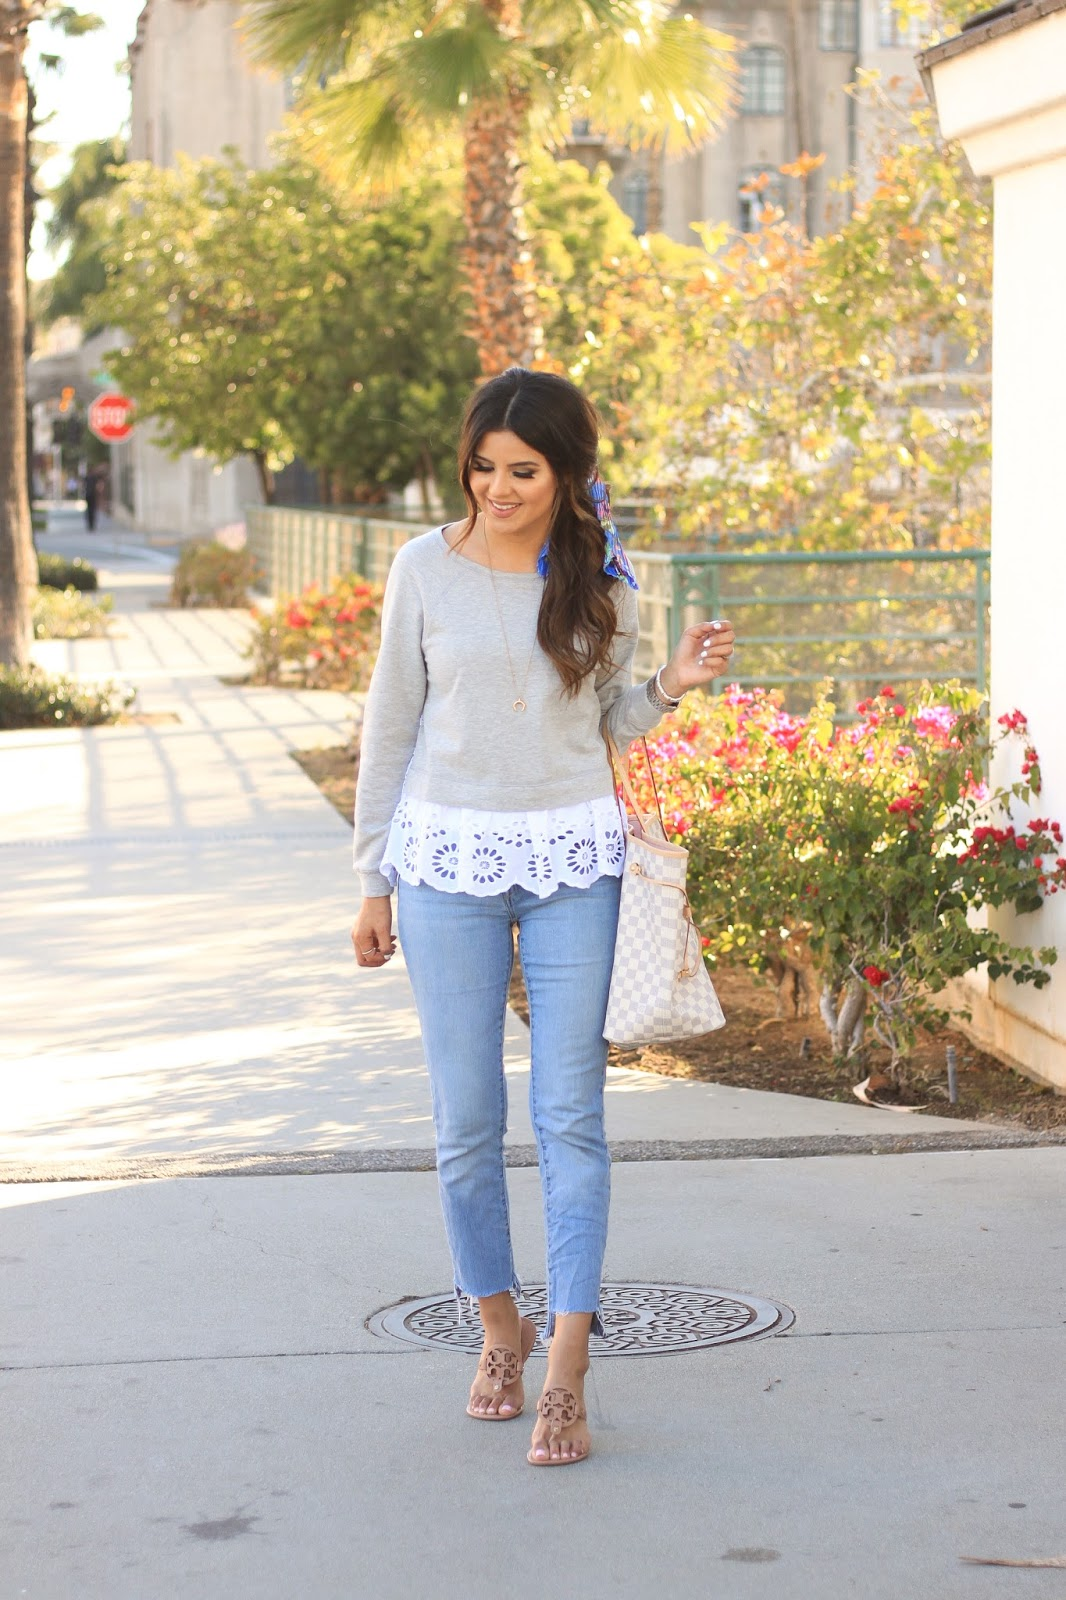 Eyelet trends for spring how to dress up a sweatshirt with tory burch miller sandals